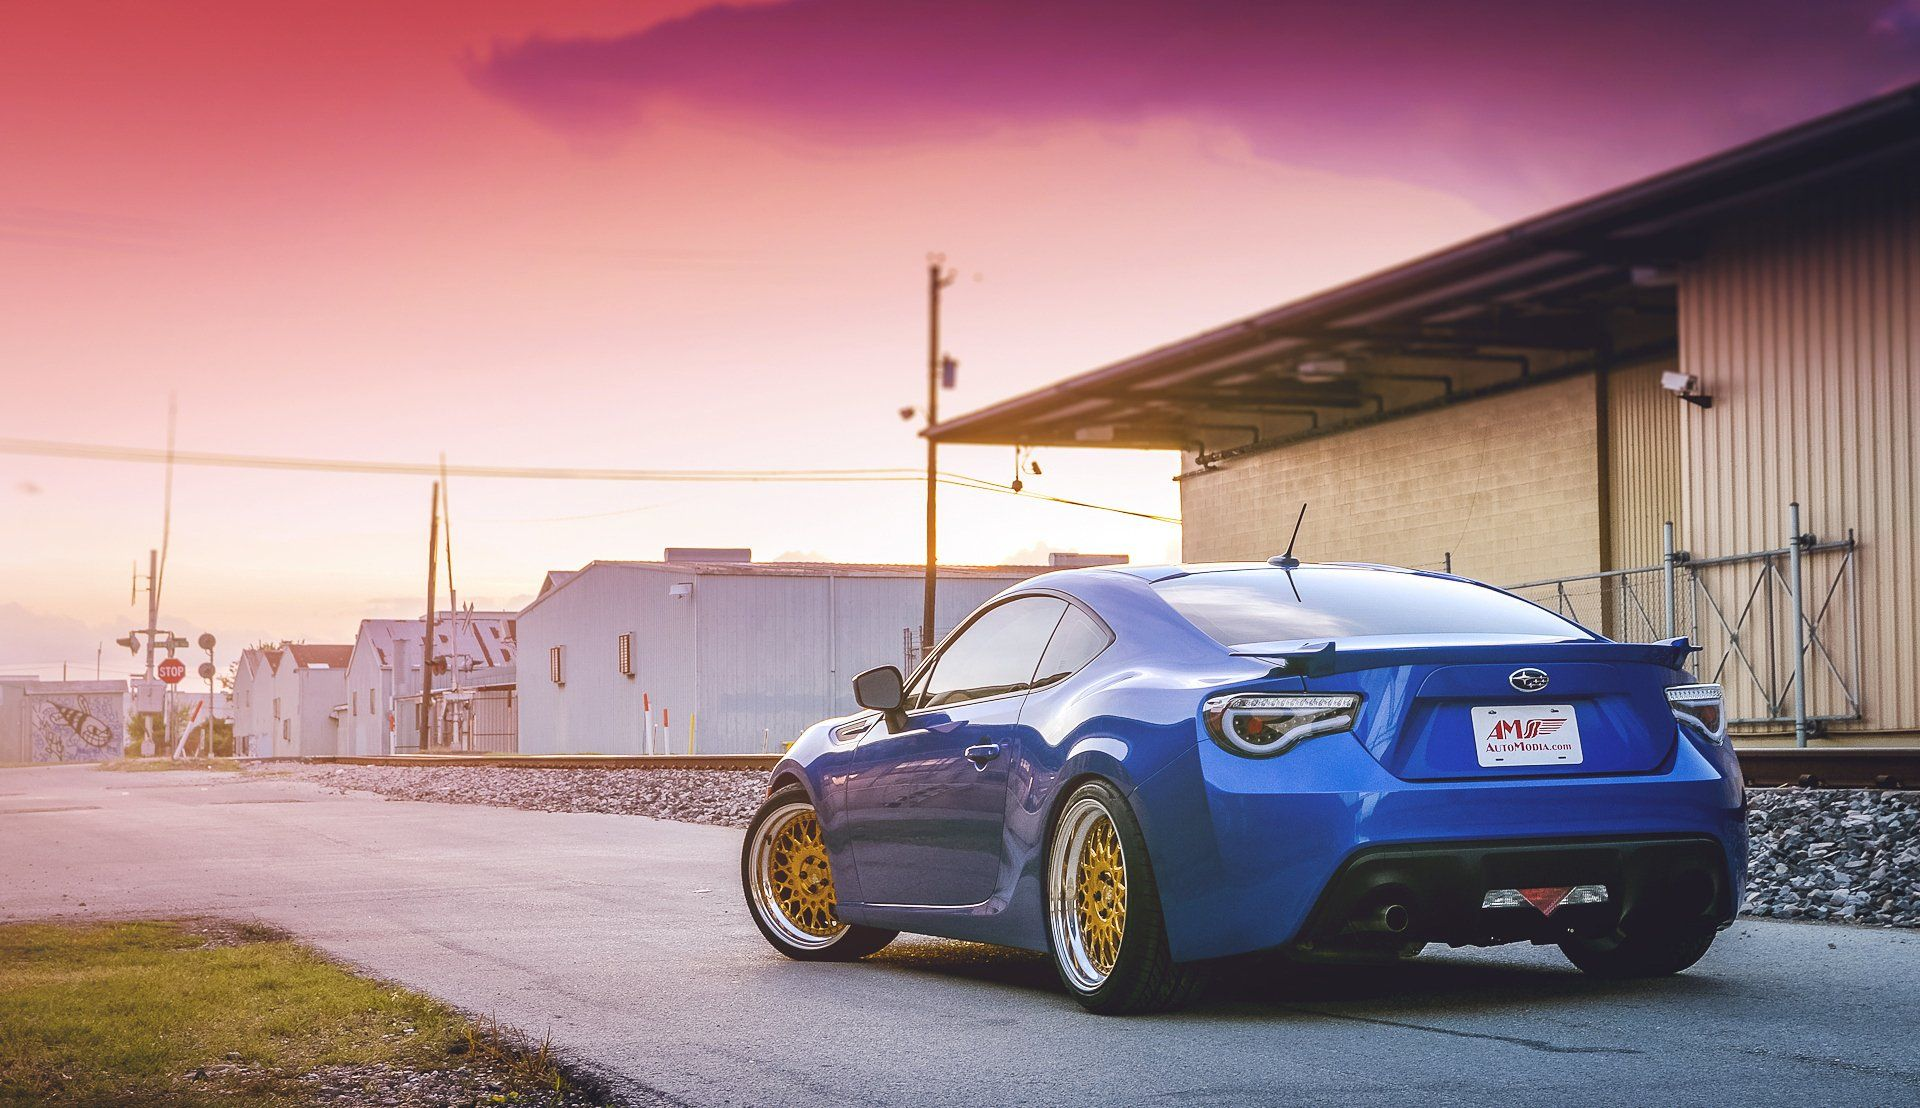 Subaru Brz Wallpapers Top Free Subaru Brz Backgrounds